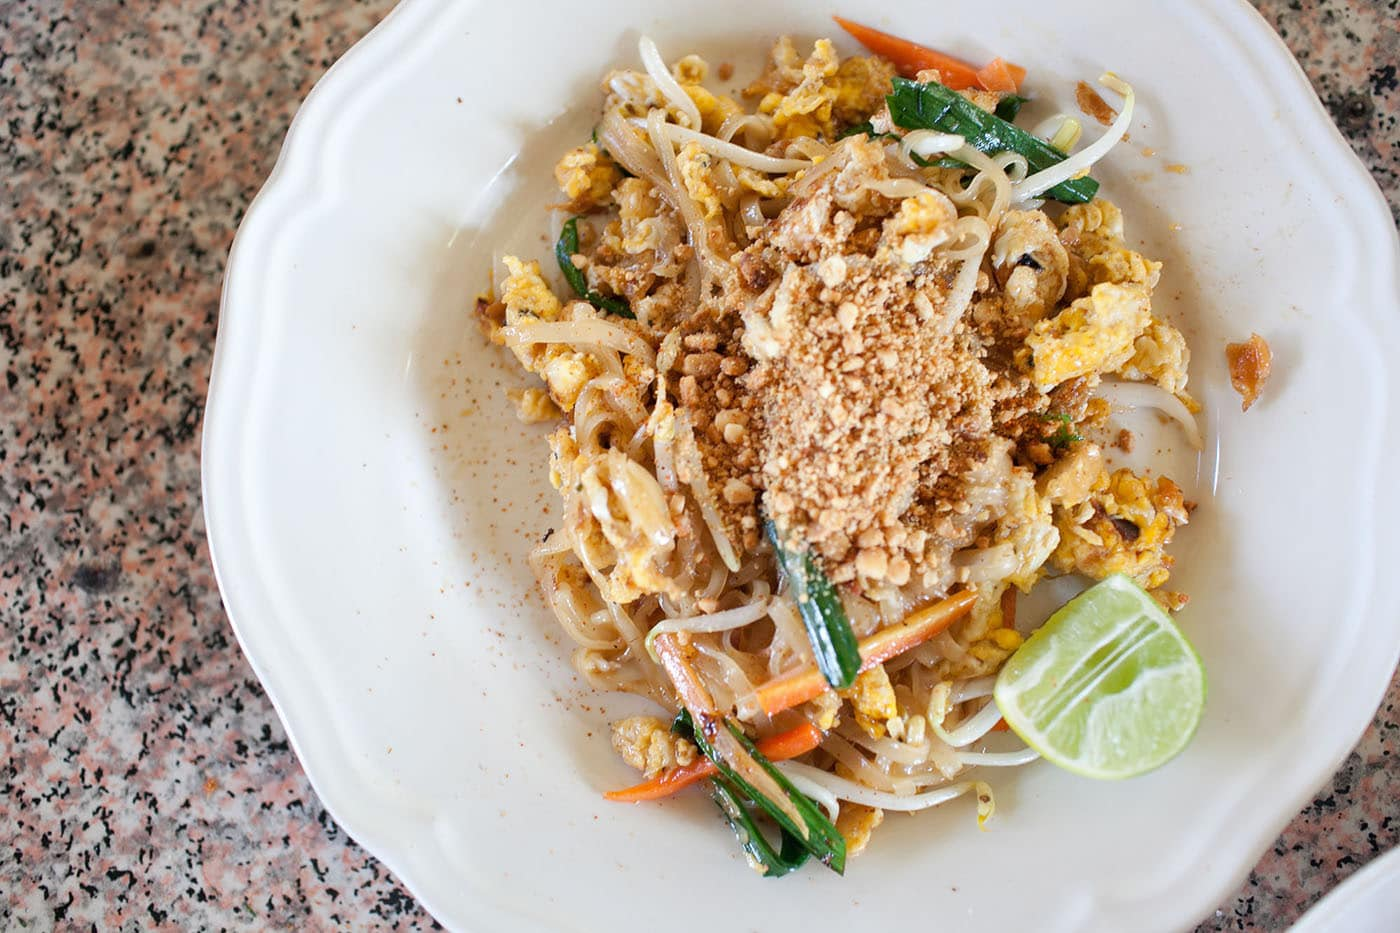 Chiang Mai Pad Thai Recipe with tamarind, rice noodles, and tofu.